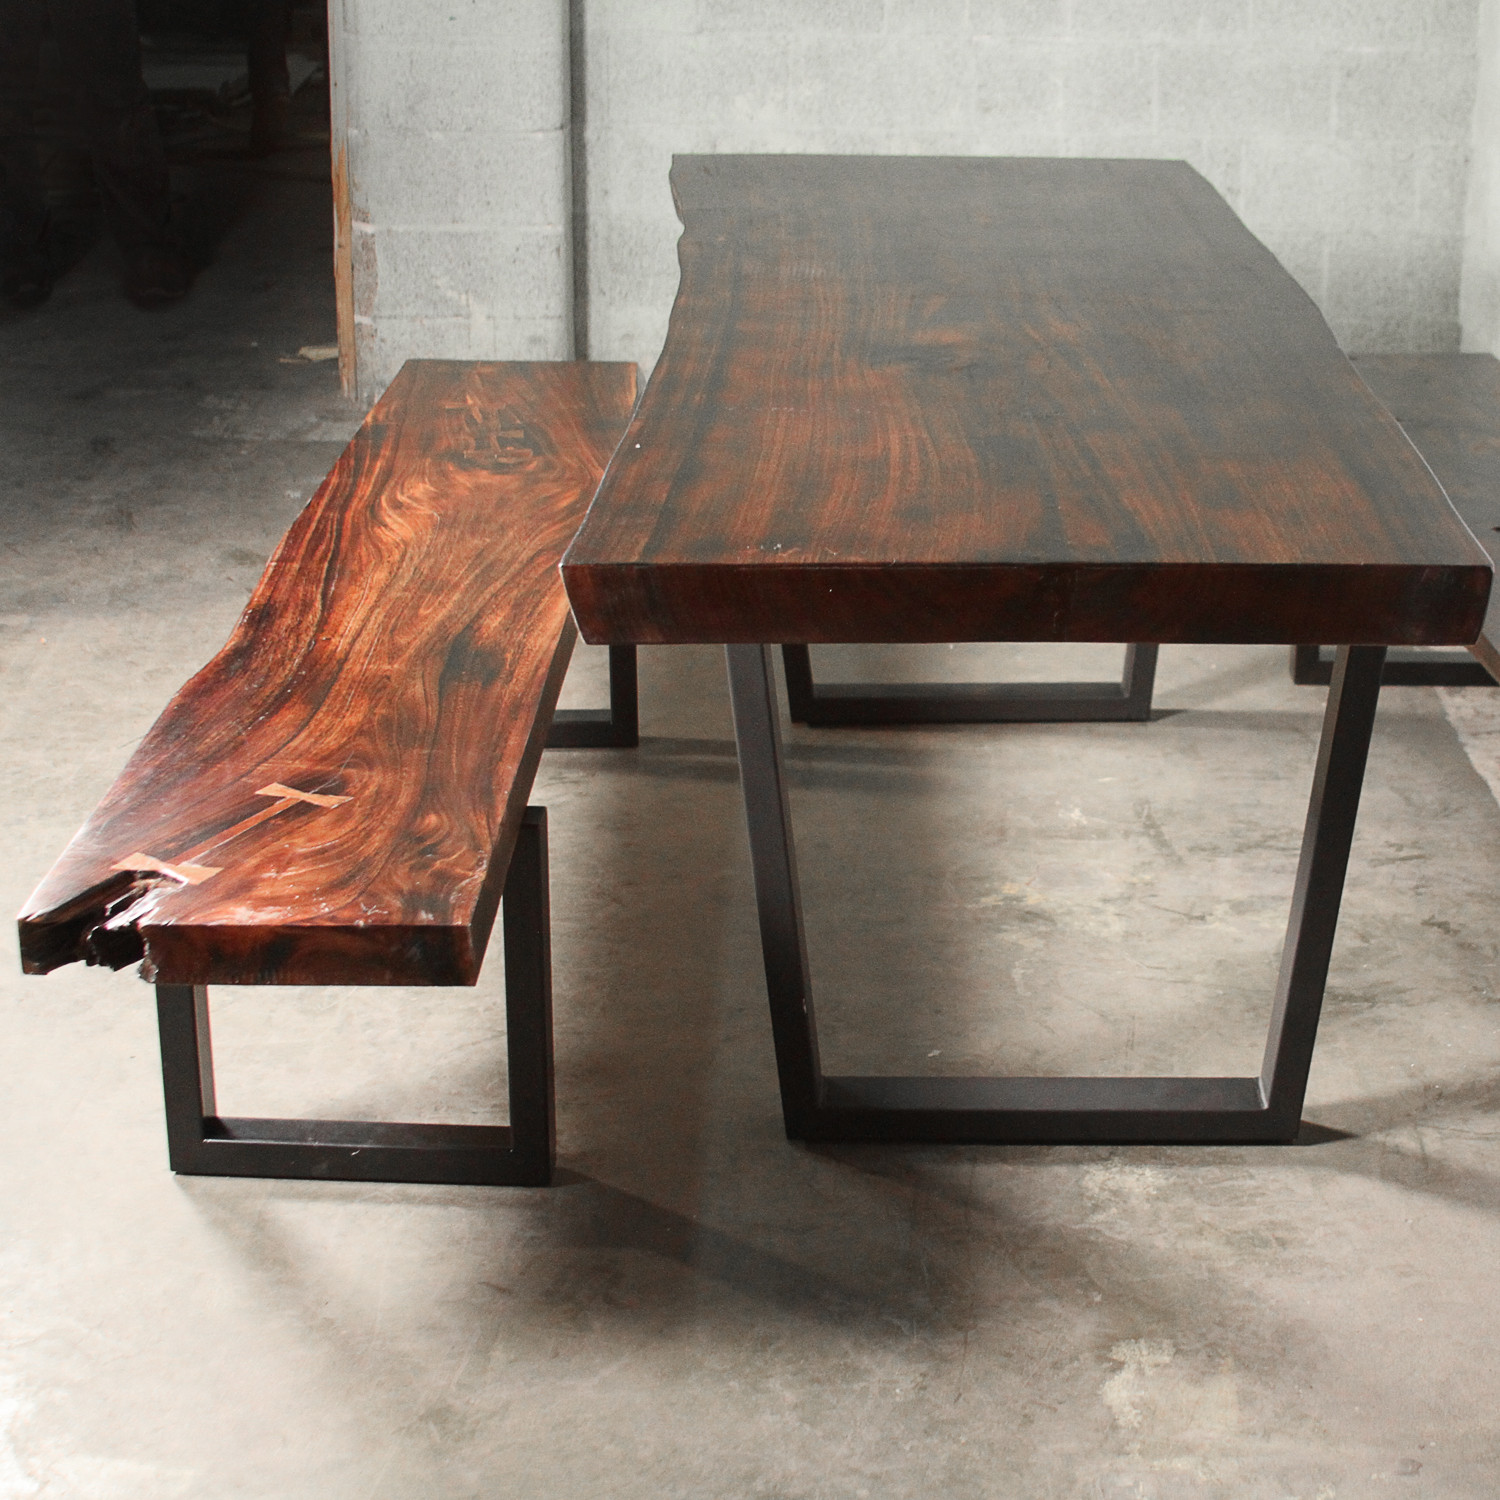 Burned Top Alkasas Set 1 Dining Table Amp 2 Benches